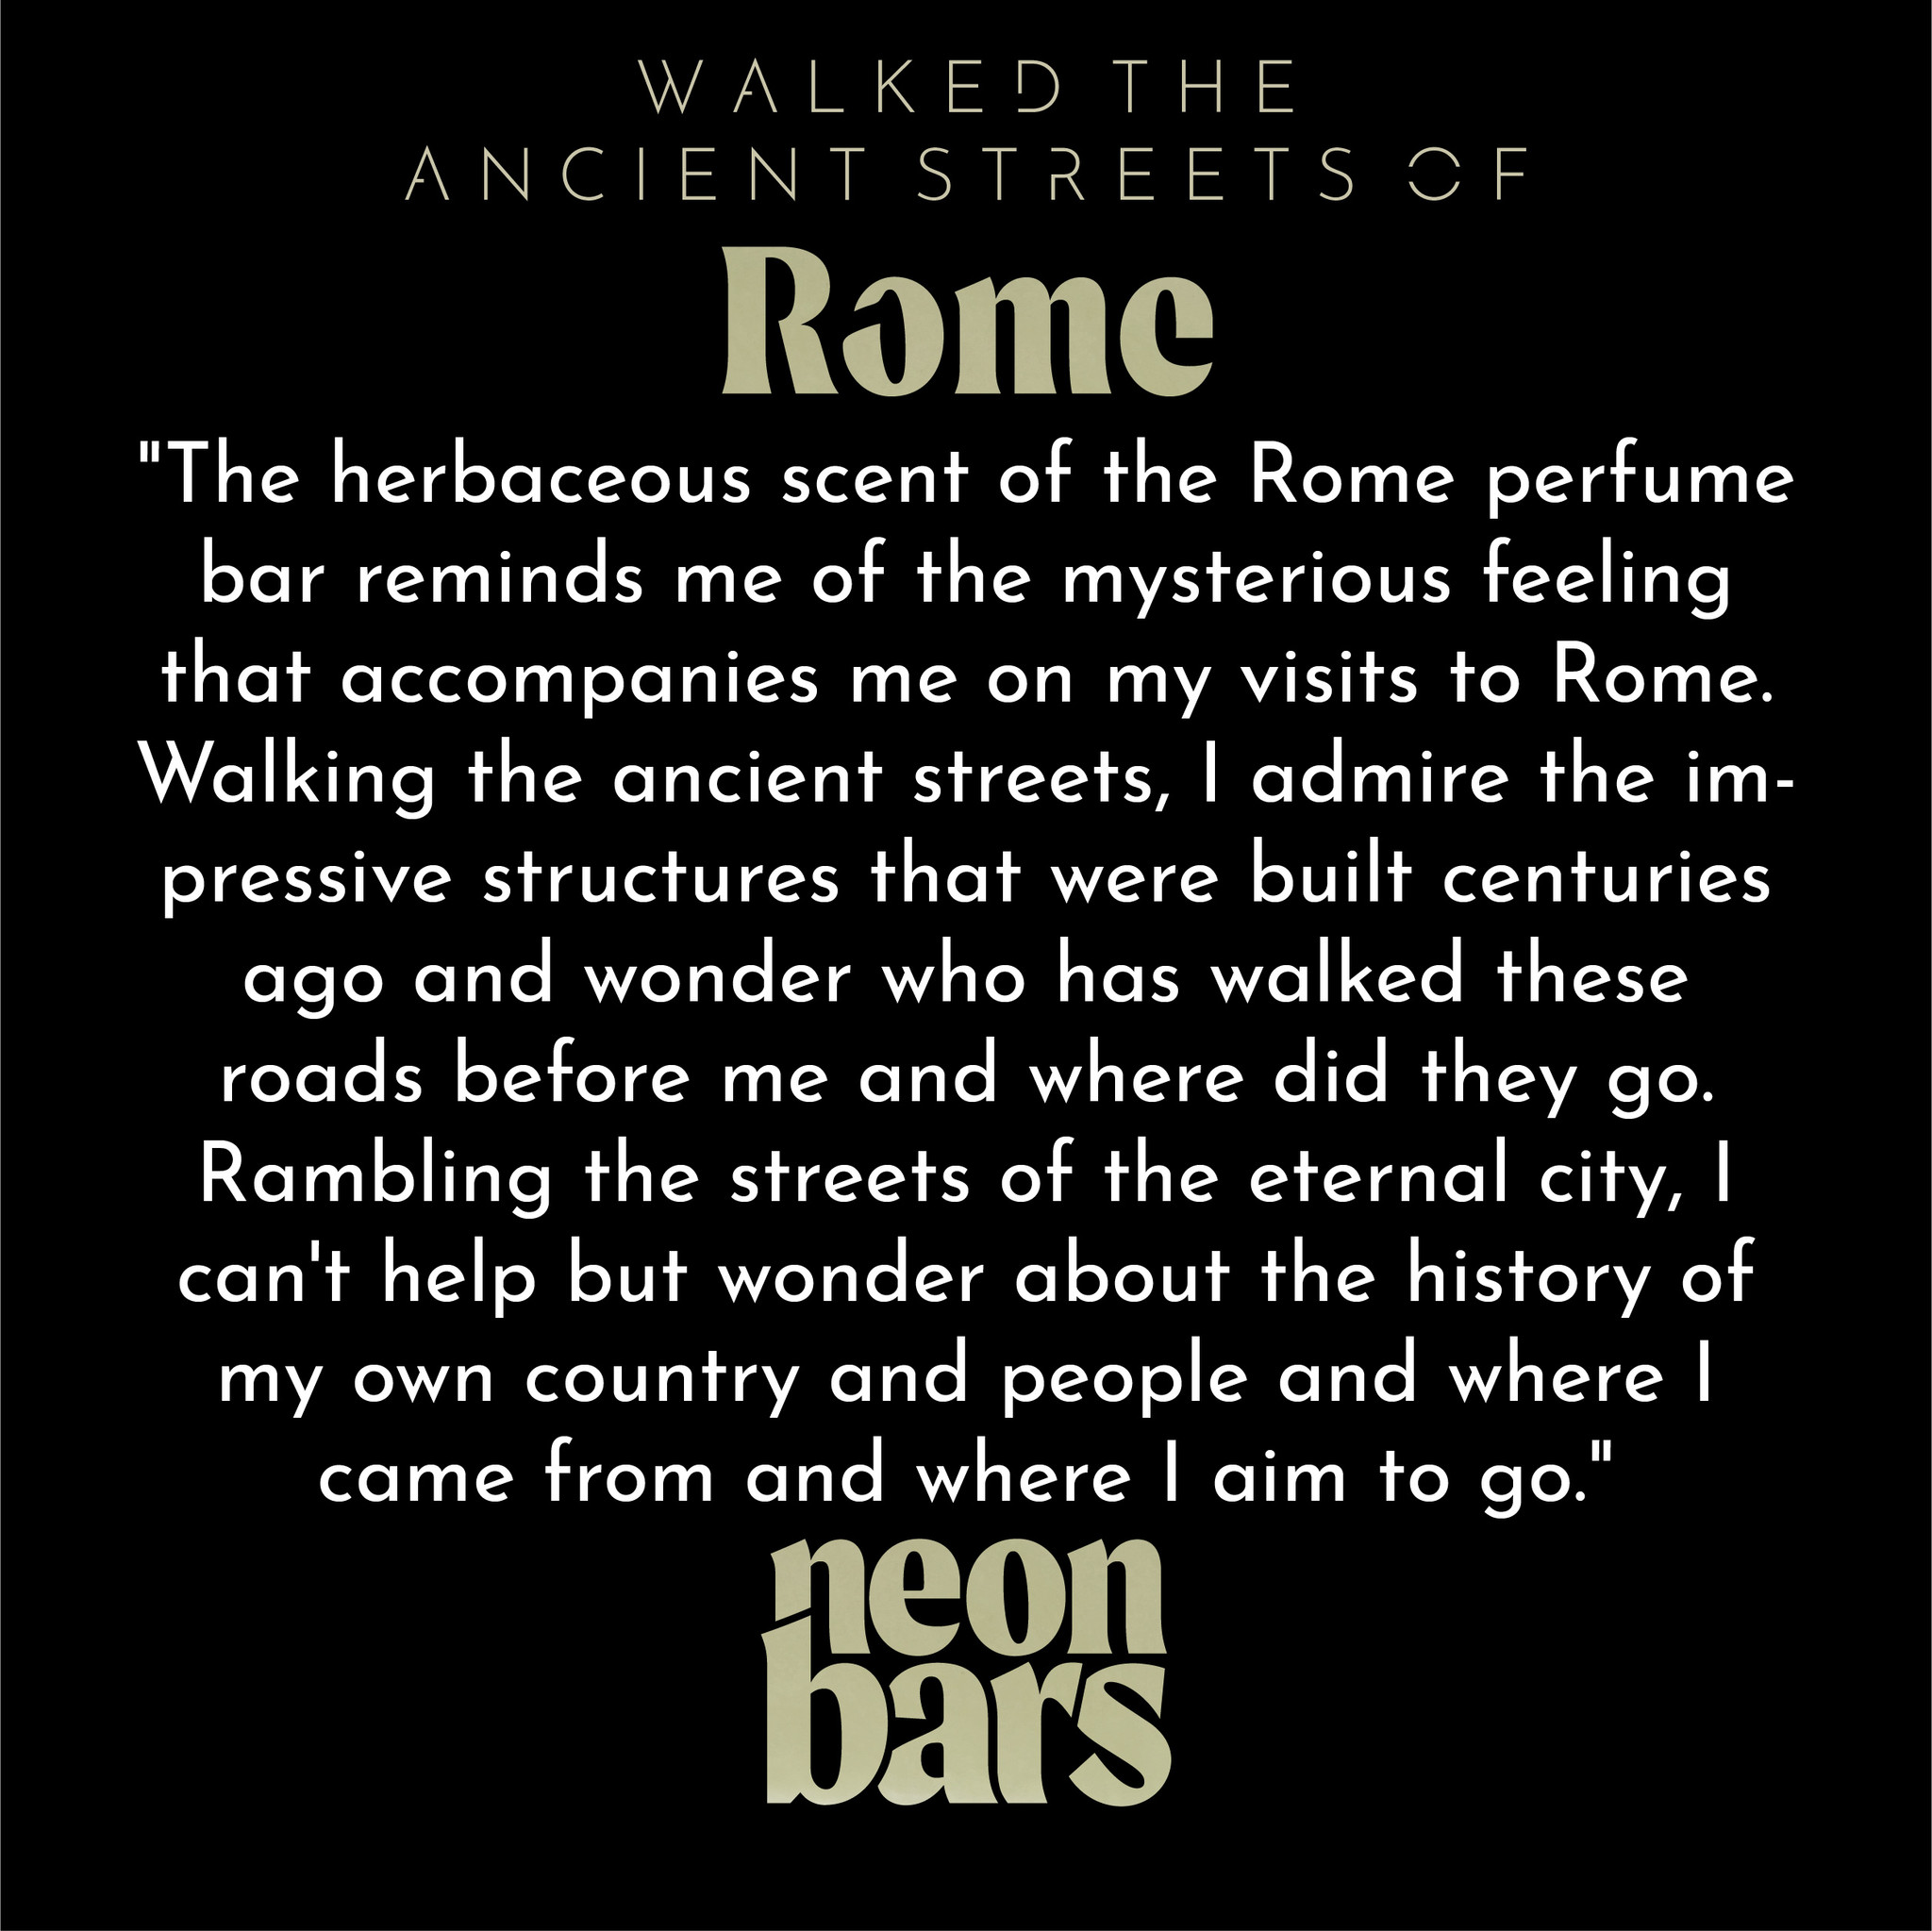 walked the ancient streets of Rome